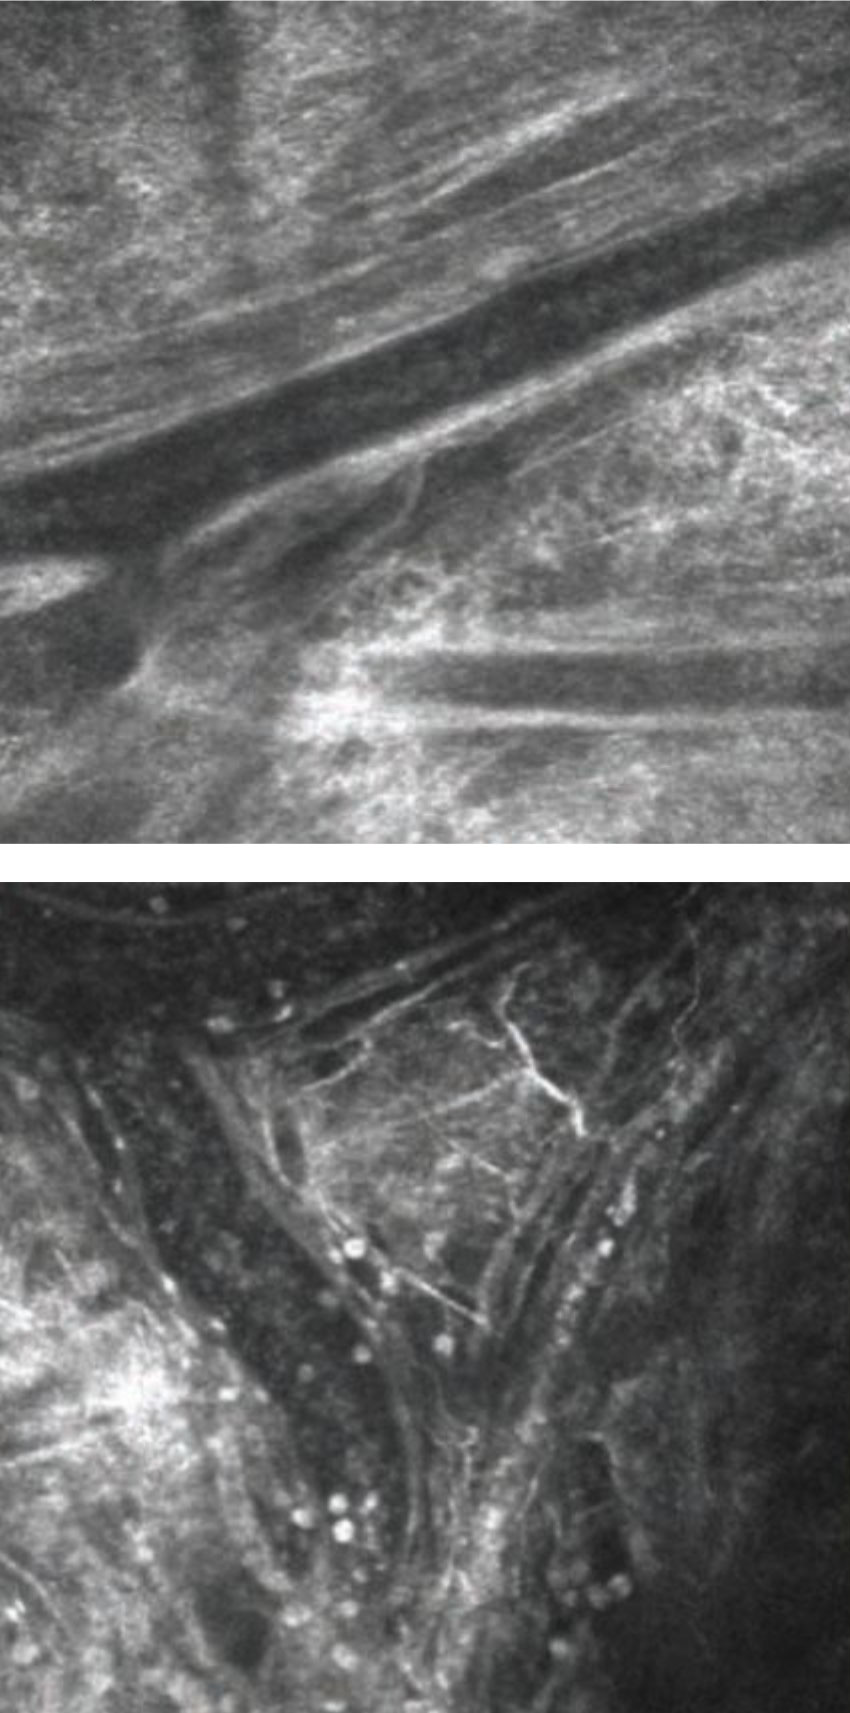 In vivo imaging of conjunctival blood vessels before (left) and after (right) allergen challenge. White cells are clearly visible following challenge, and some of these can be see migrating out of vessels into extravascular space. Photo: Mark B. Abelson, MD, CM